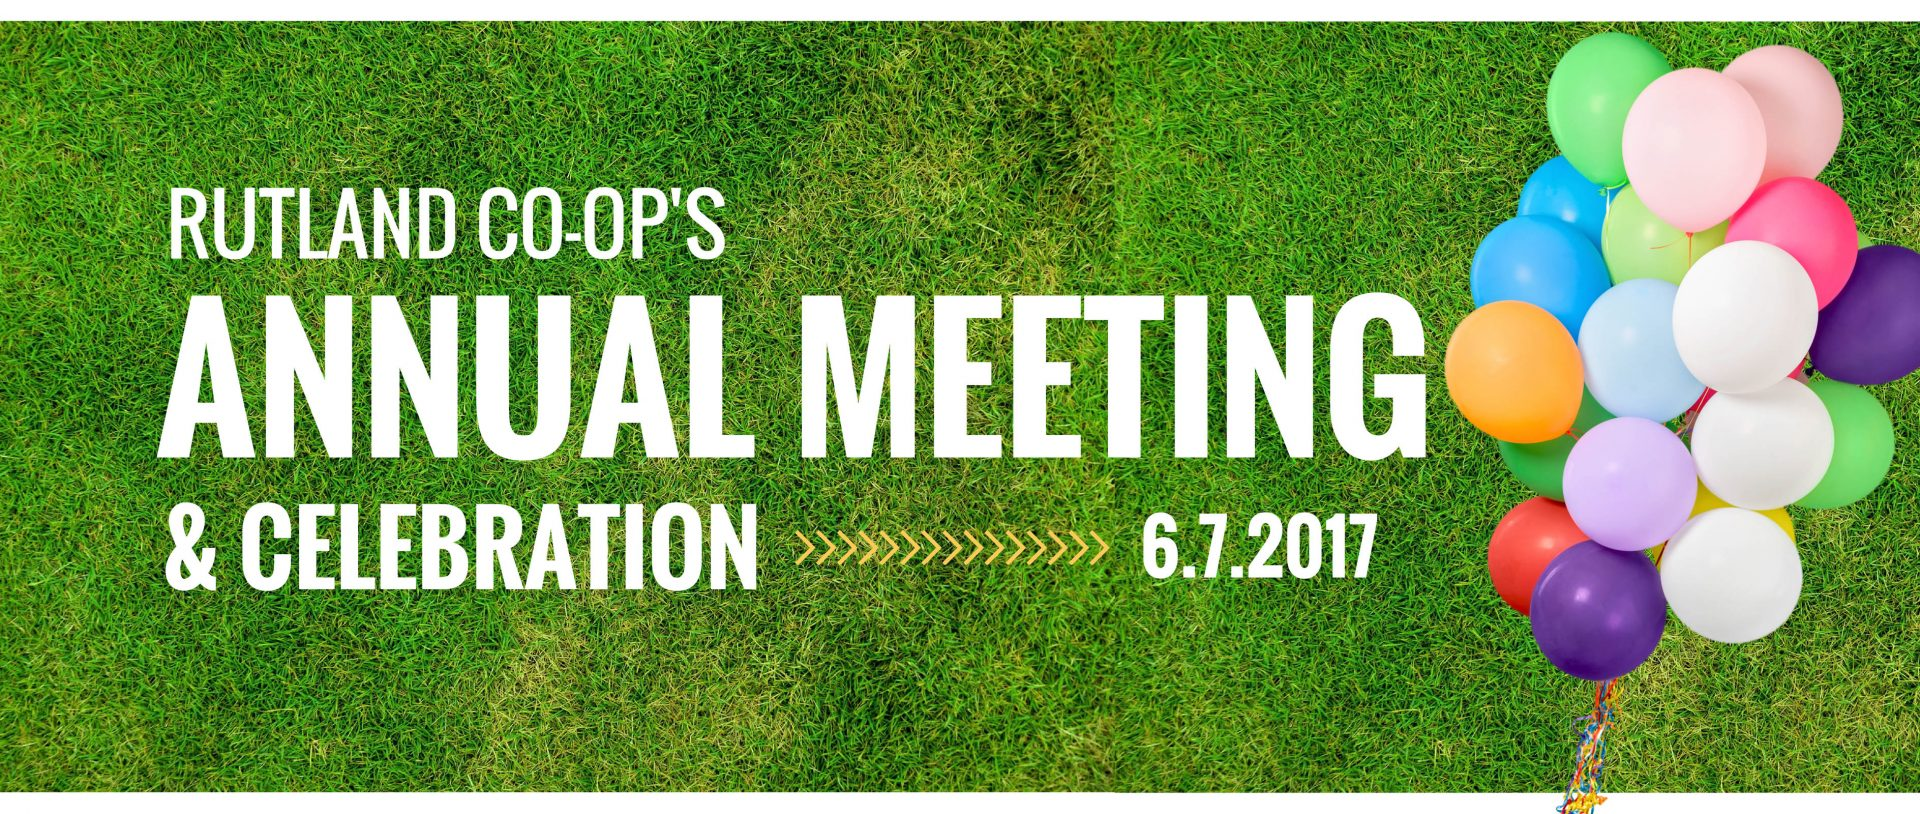 ANNUAL-MEETING3